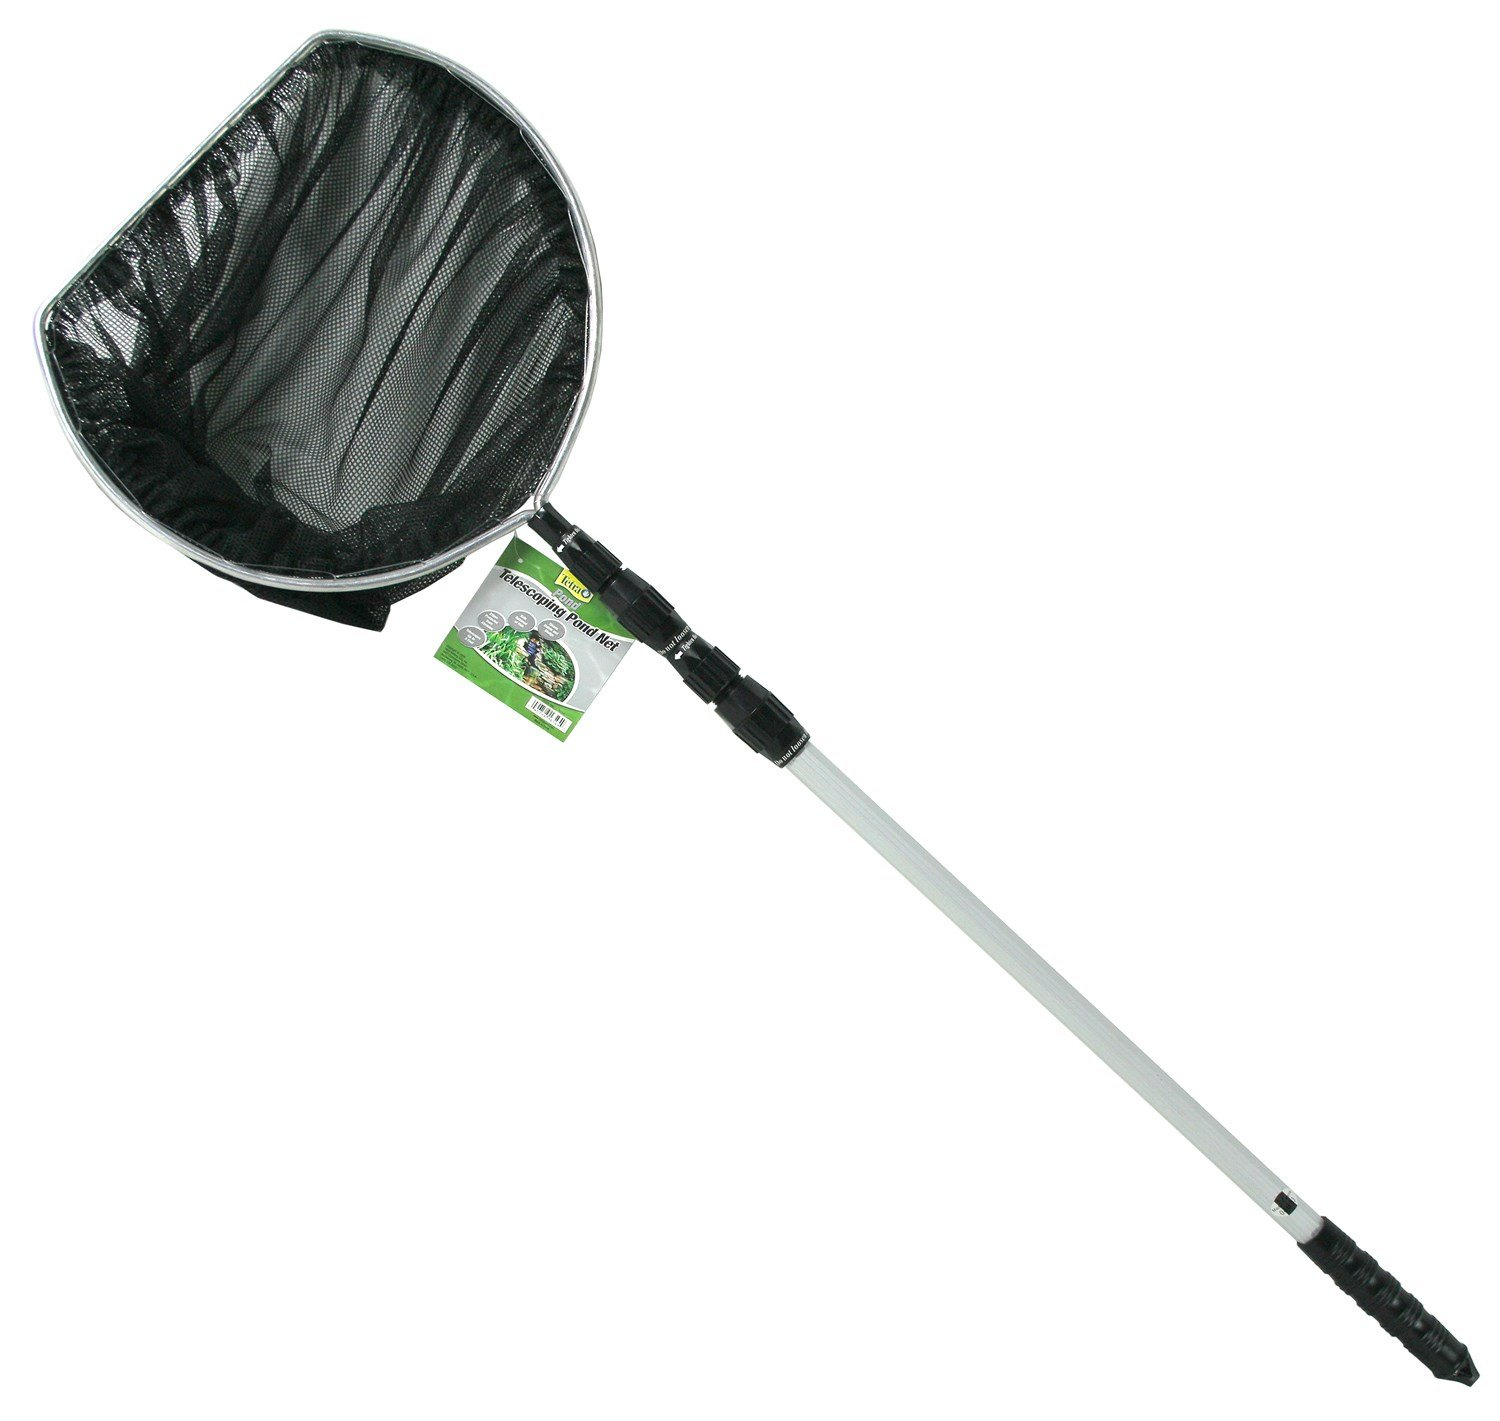 Tetra 16504 Telescoping Pond Net by Tetra Pond